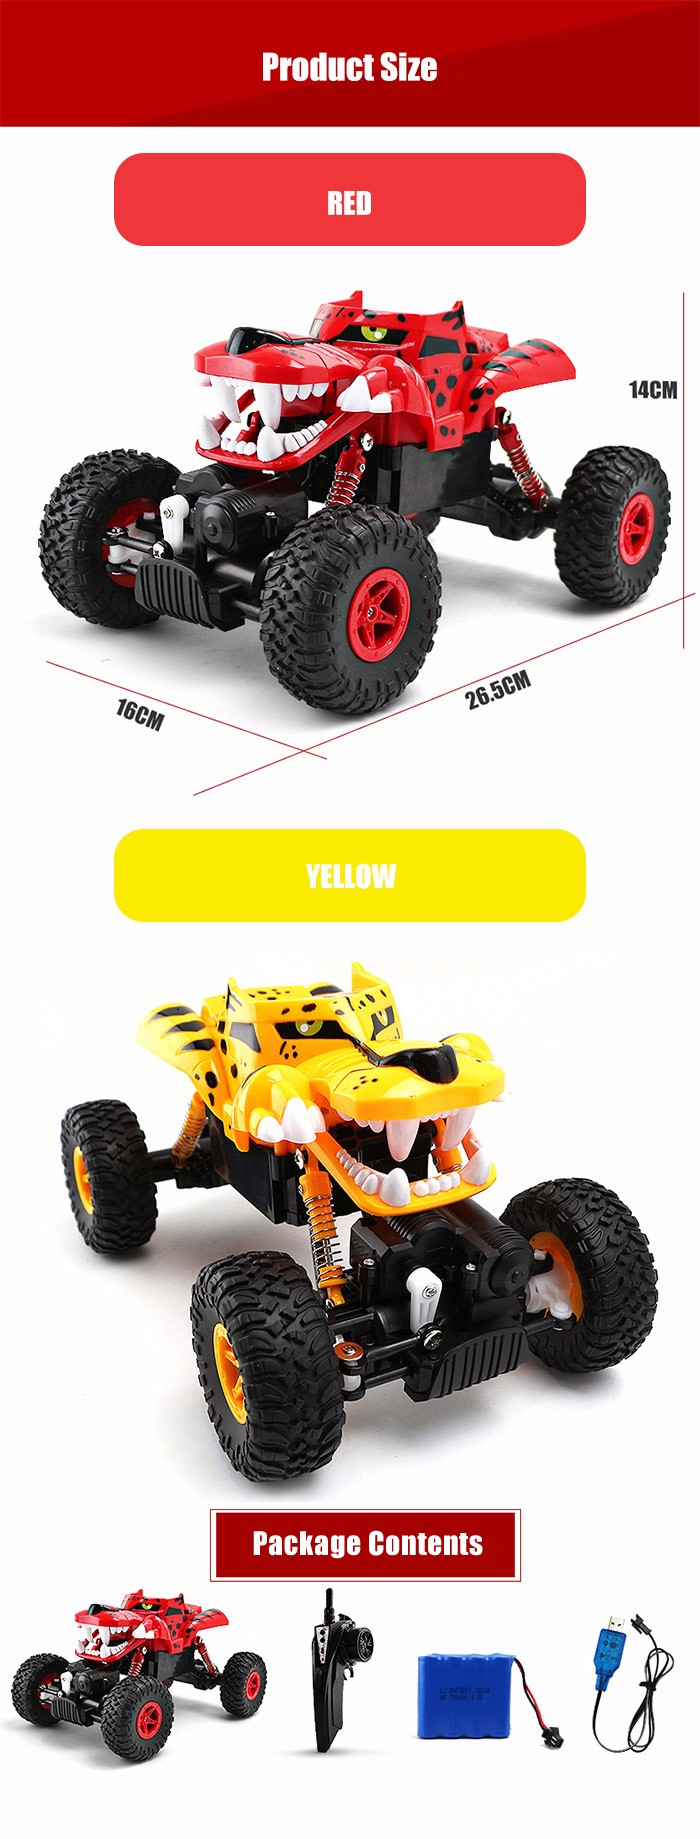 G03052R 1:18 RC Climbing Truck - RTR - $26.53 Free Shipping|GearBest.com